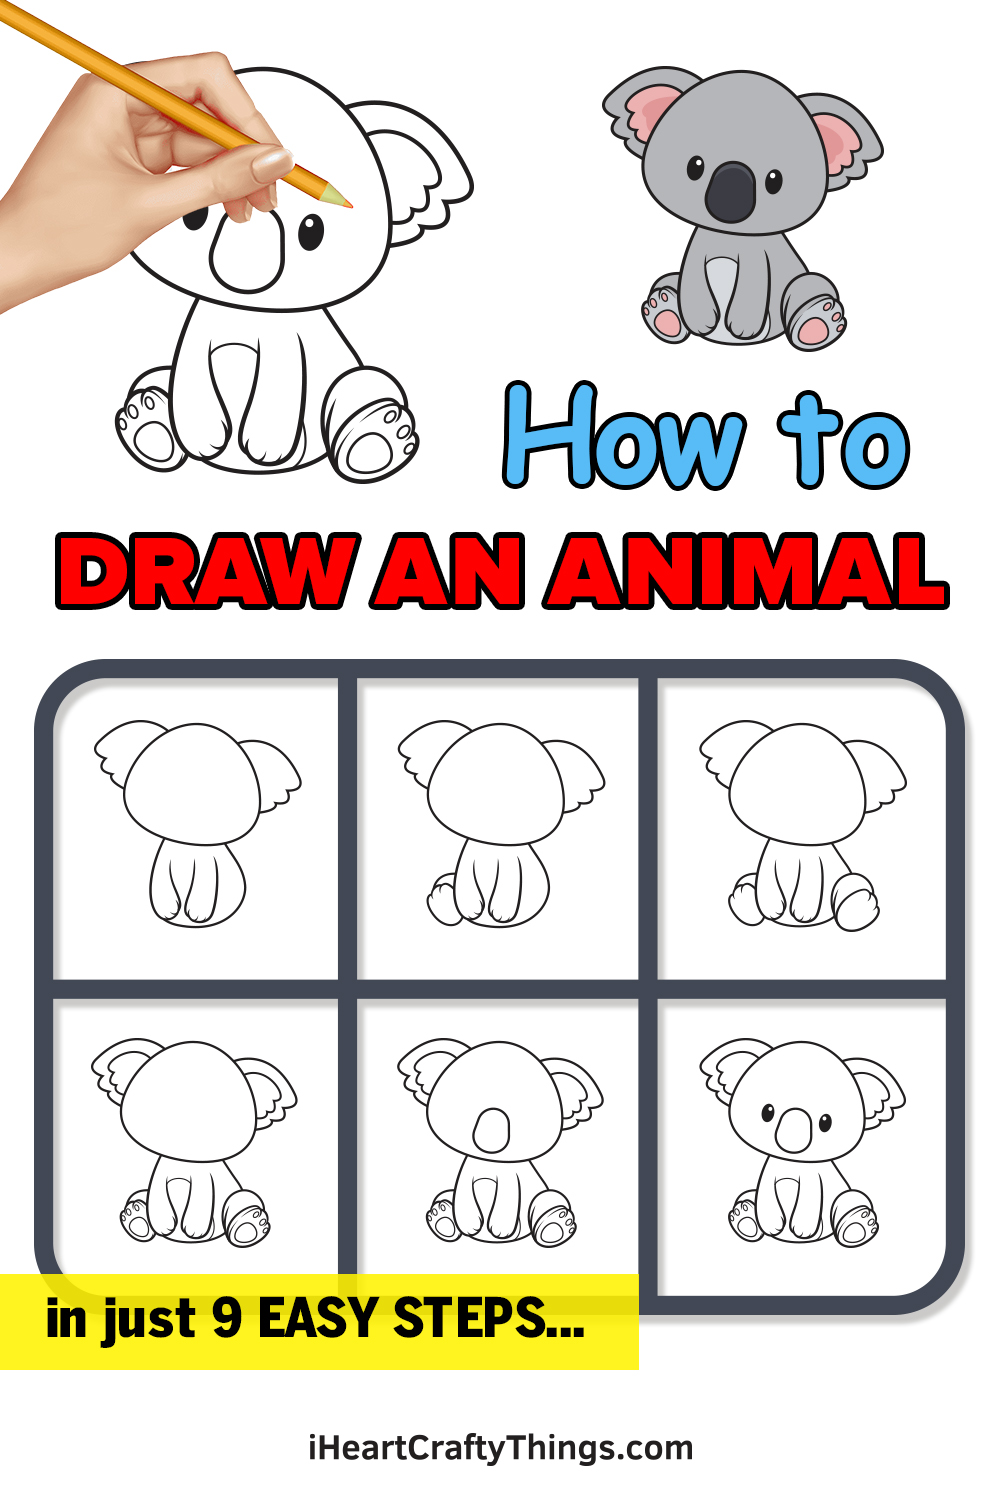 how to draw an animal in 9 easy steps